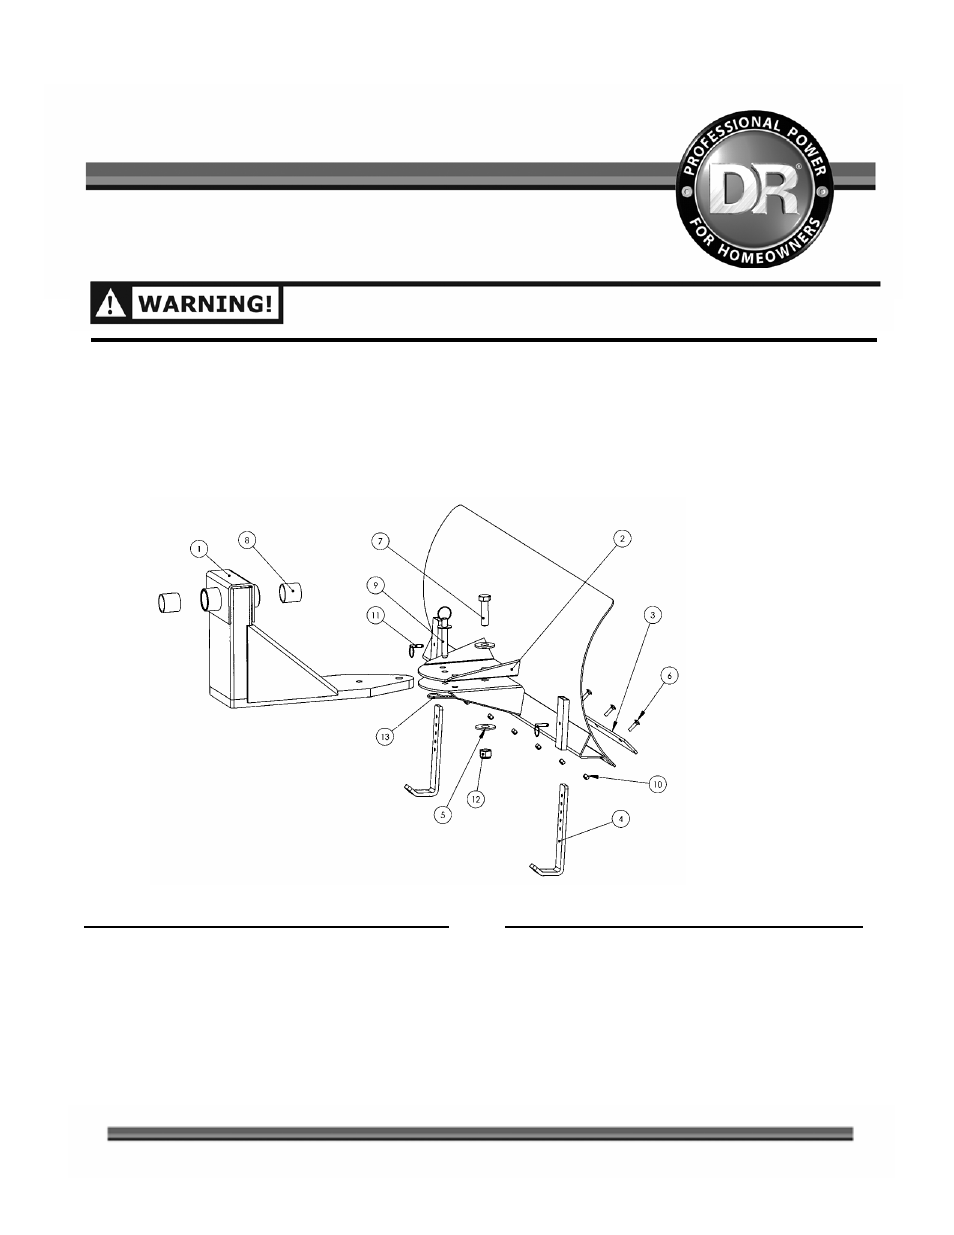 Dr Field And Brush Mower Wiring Diagram